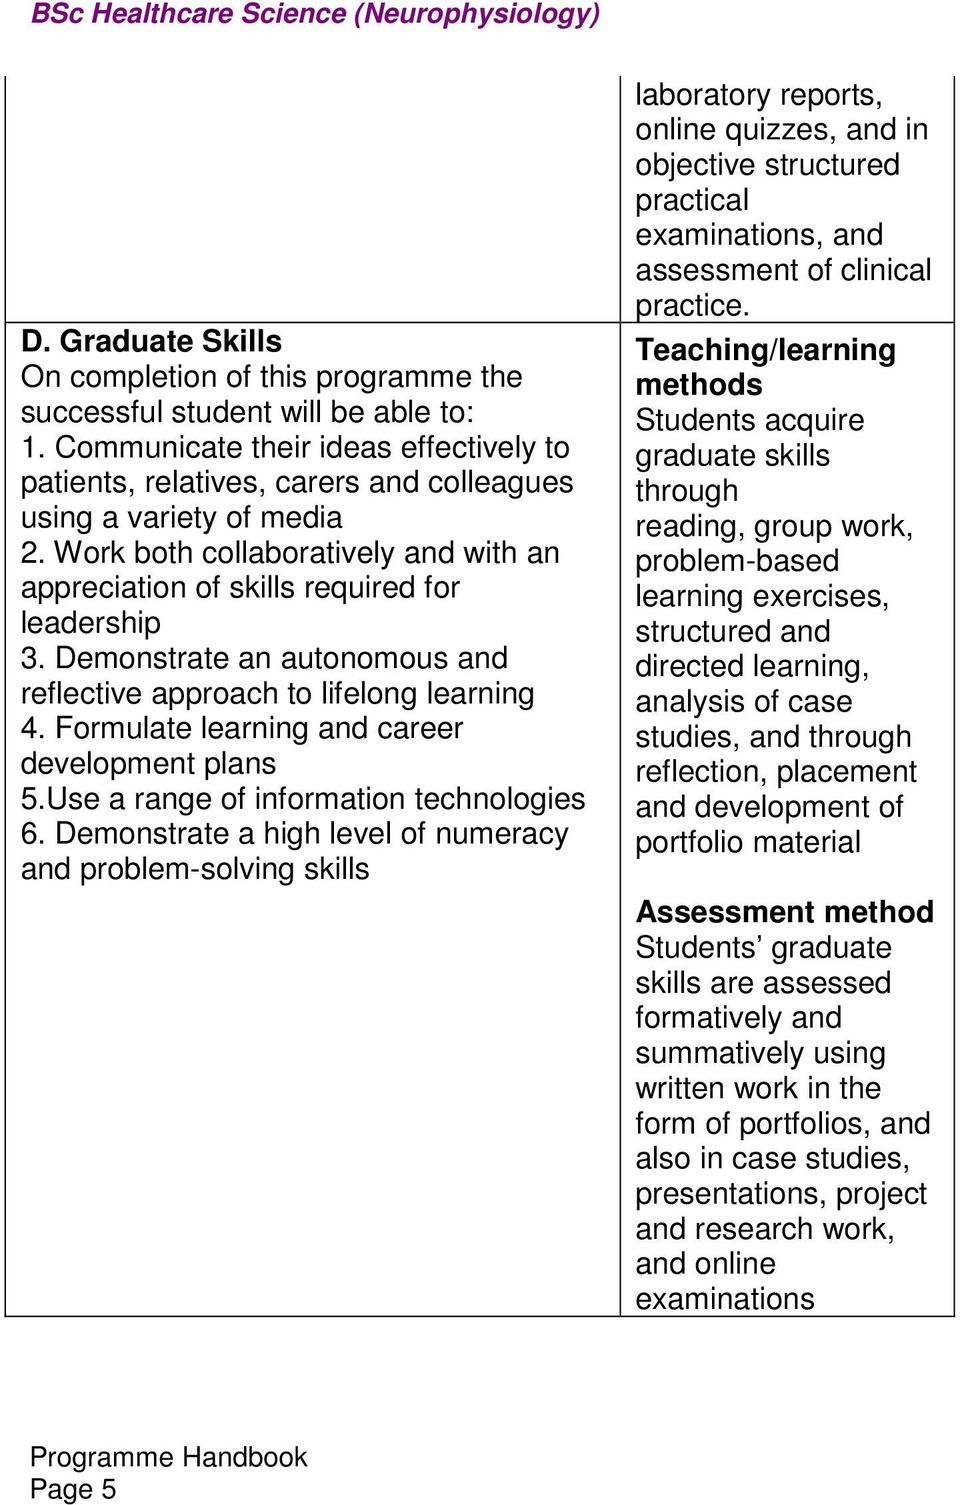 emonstrate an autonomous and reflective approach to lifelong learning 4. Formulate learning and career development plans 5.Use a range of information technologies 6.